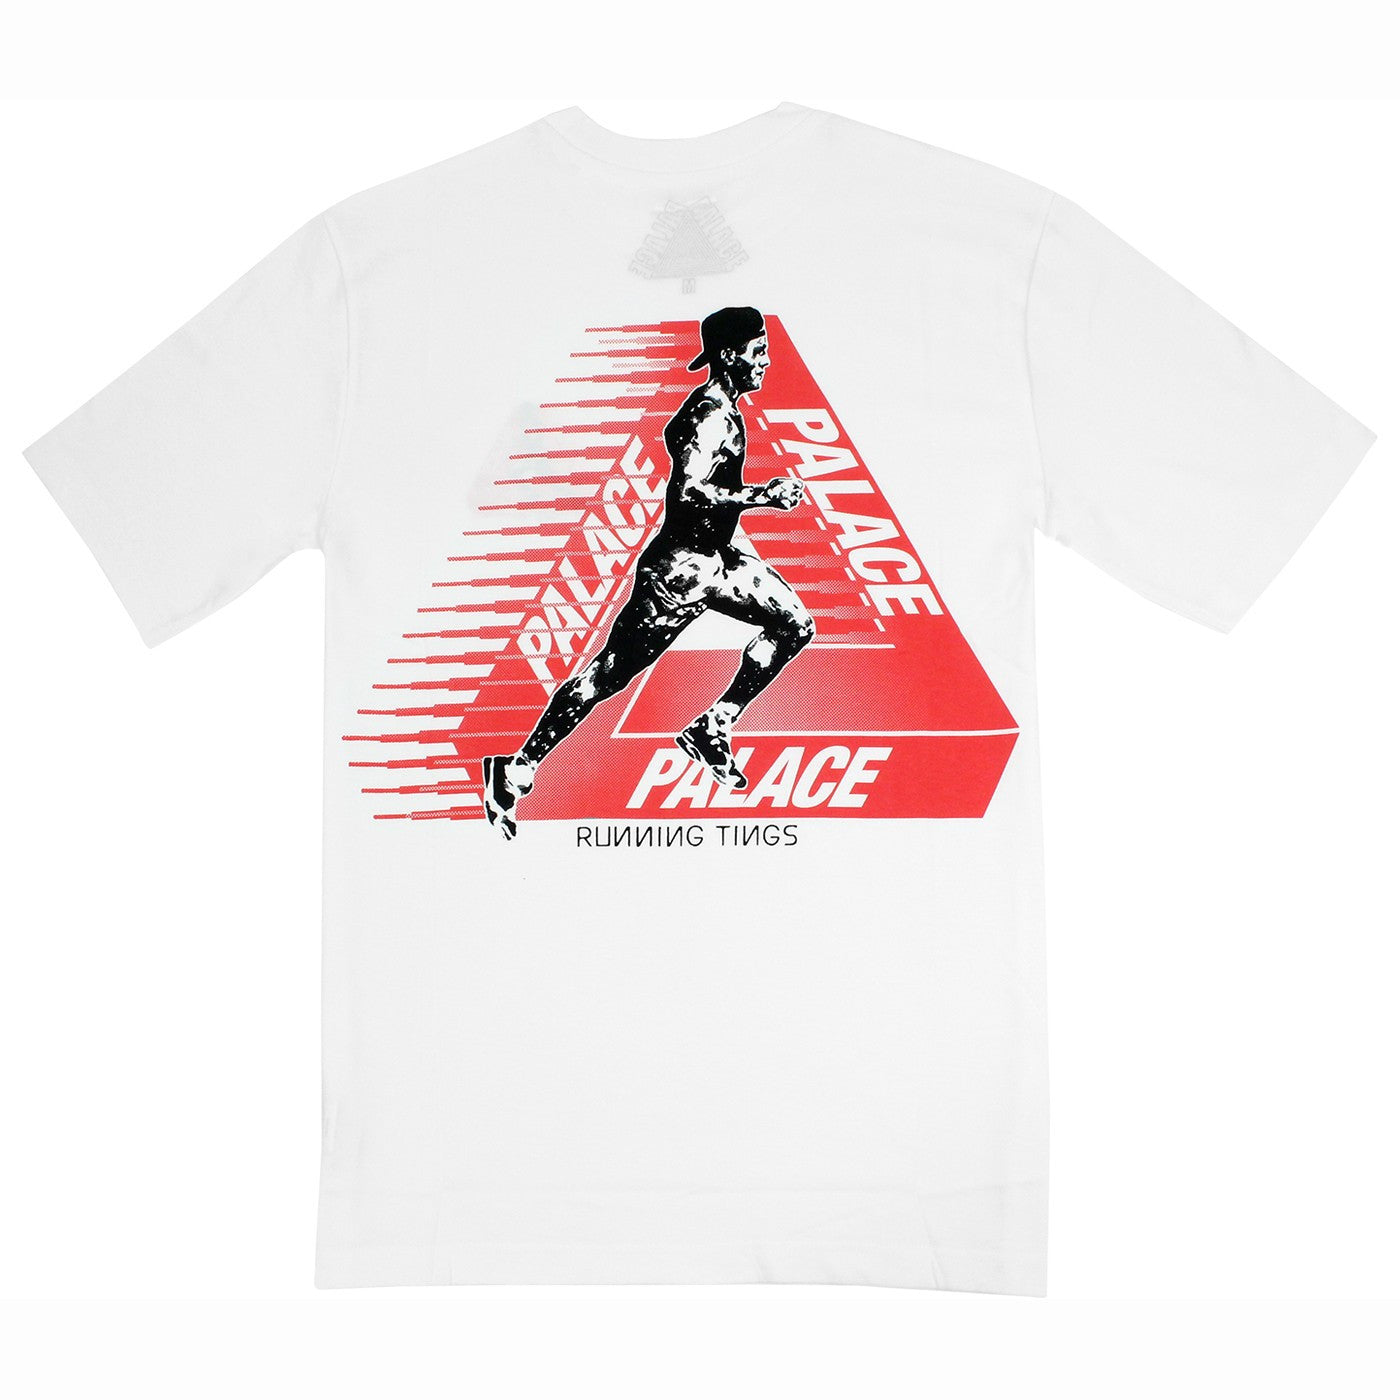 Palace Running Tings T Shirt - DS Authentic